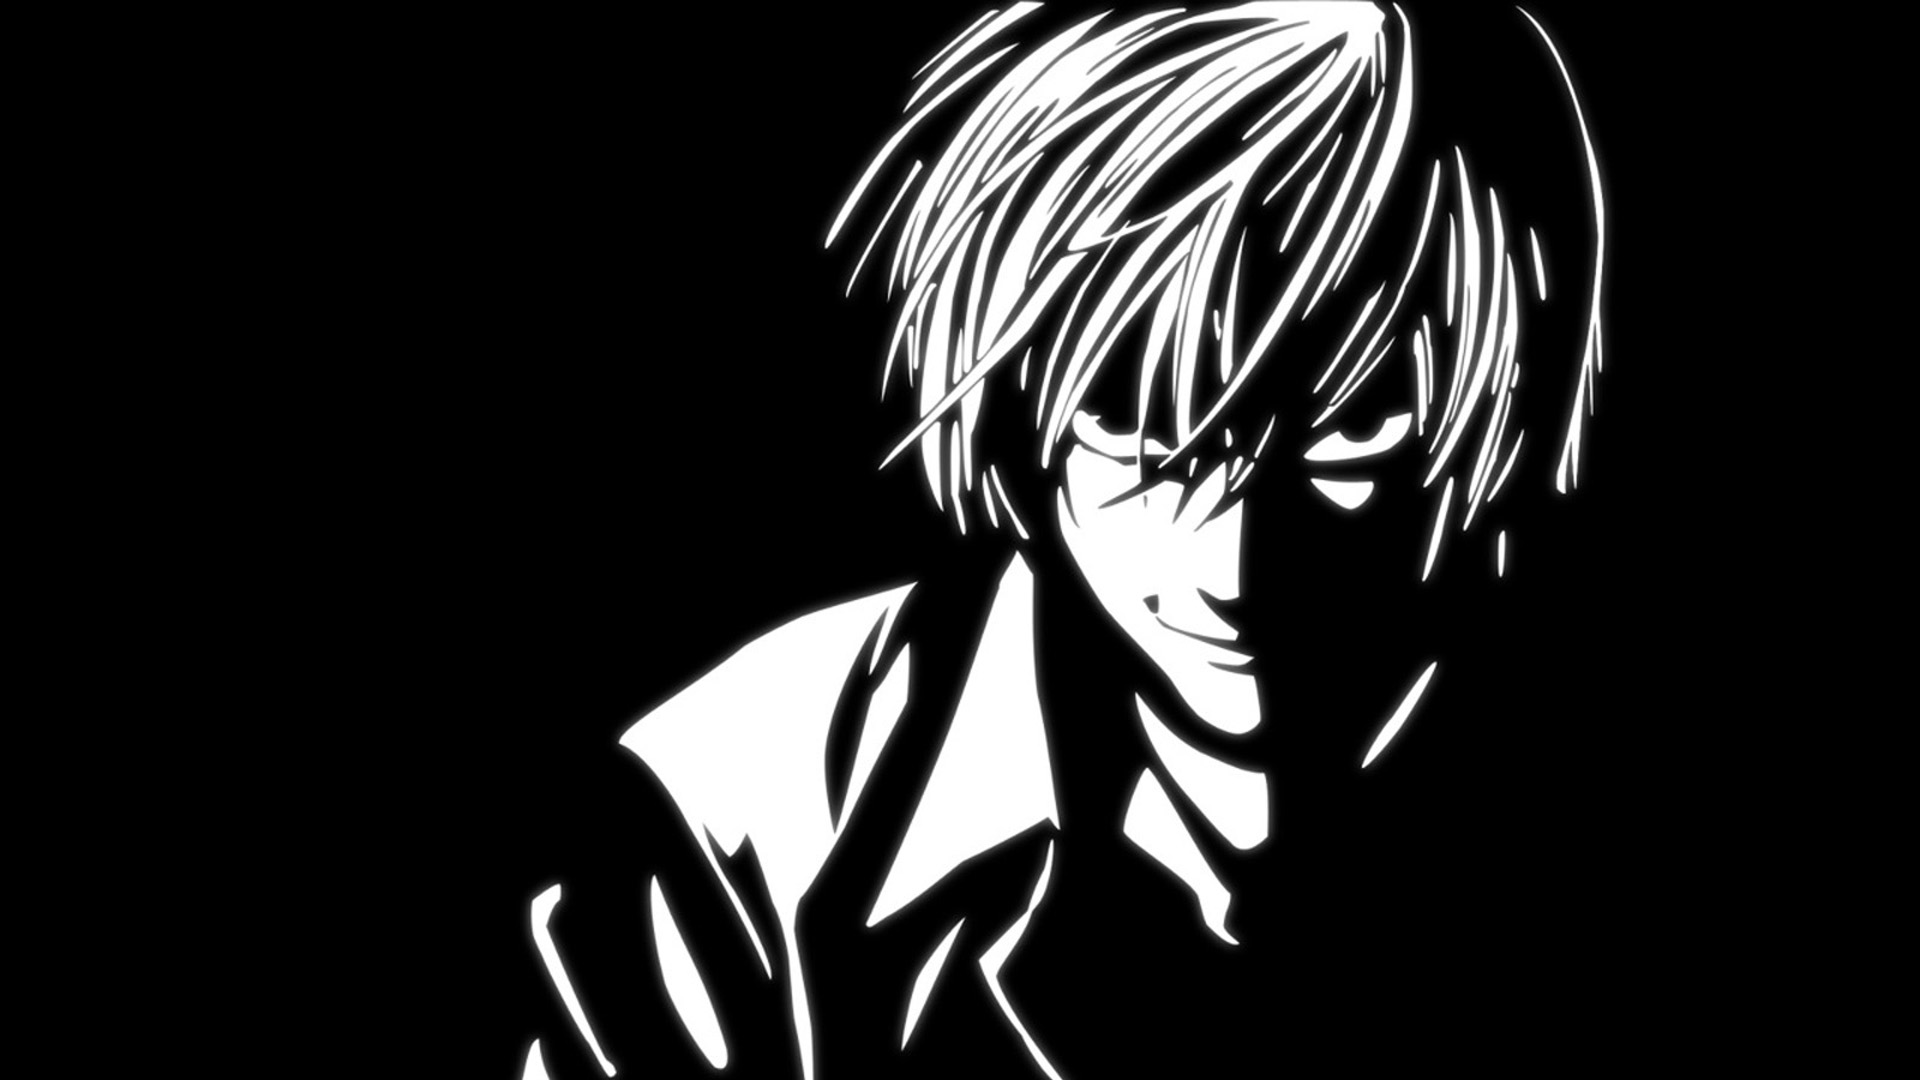 Light Yagami Wallpaper 1920x1080 Wallpapers 1920x1080 Wallpapers 1920x1080